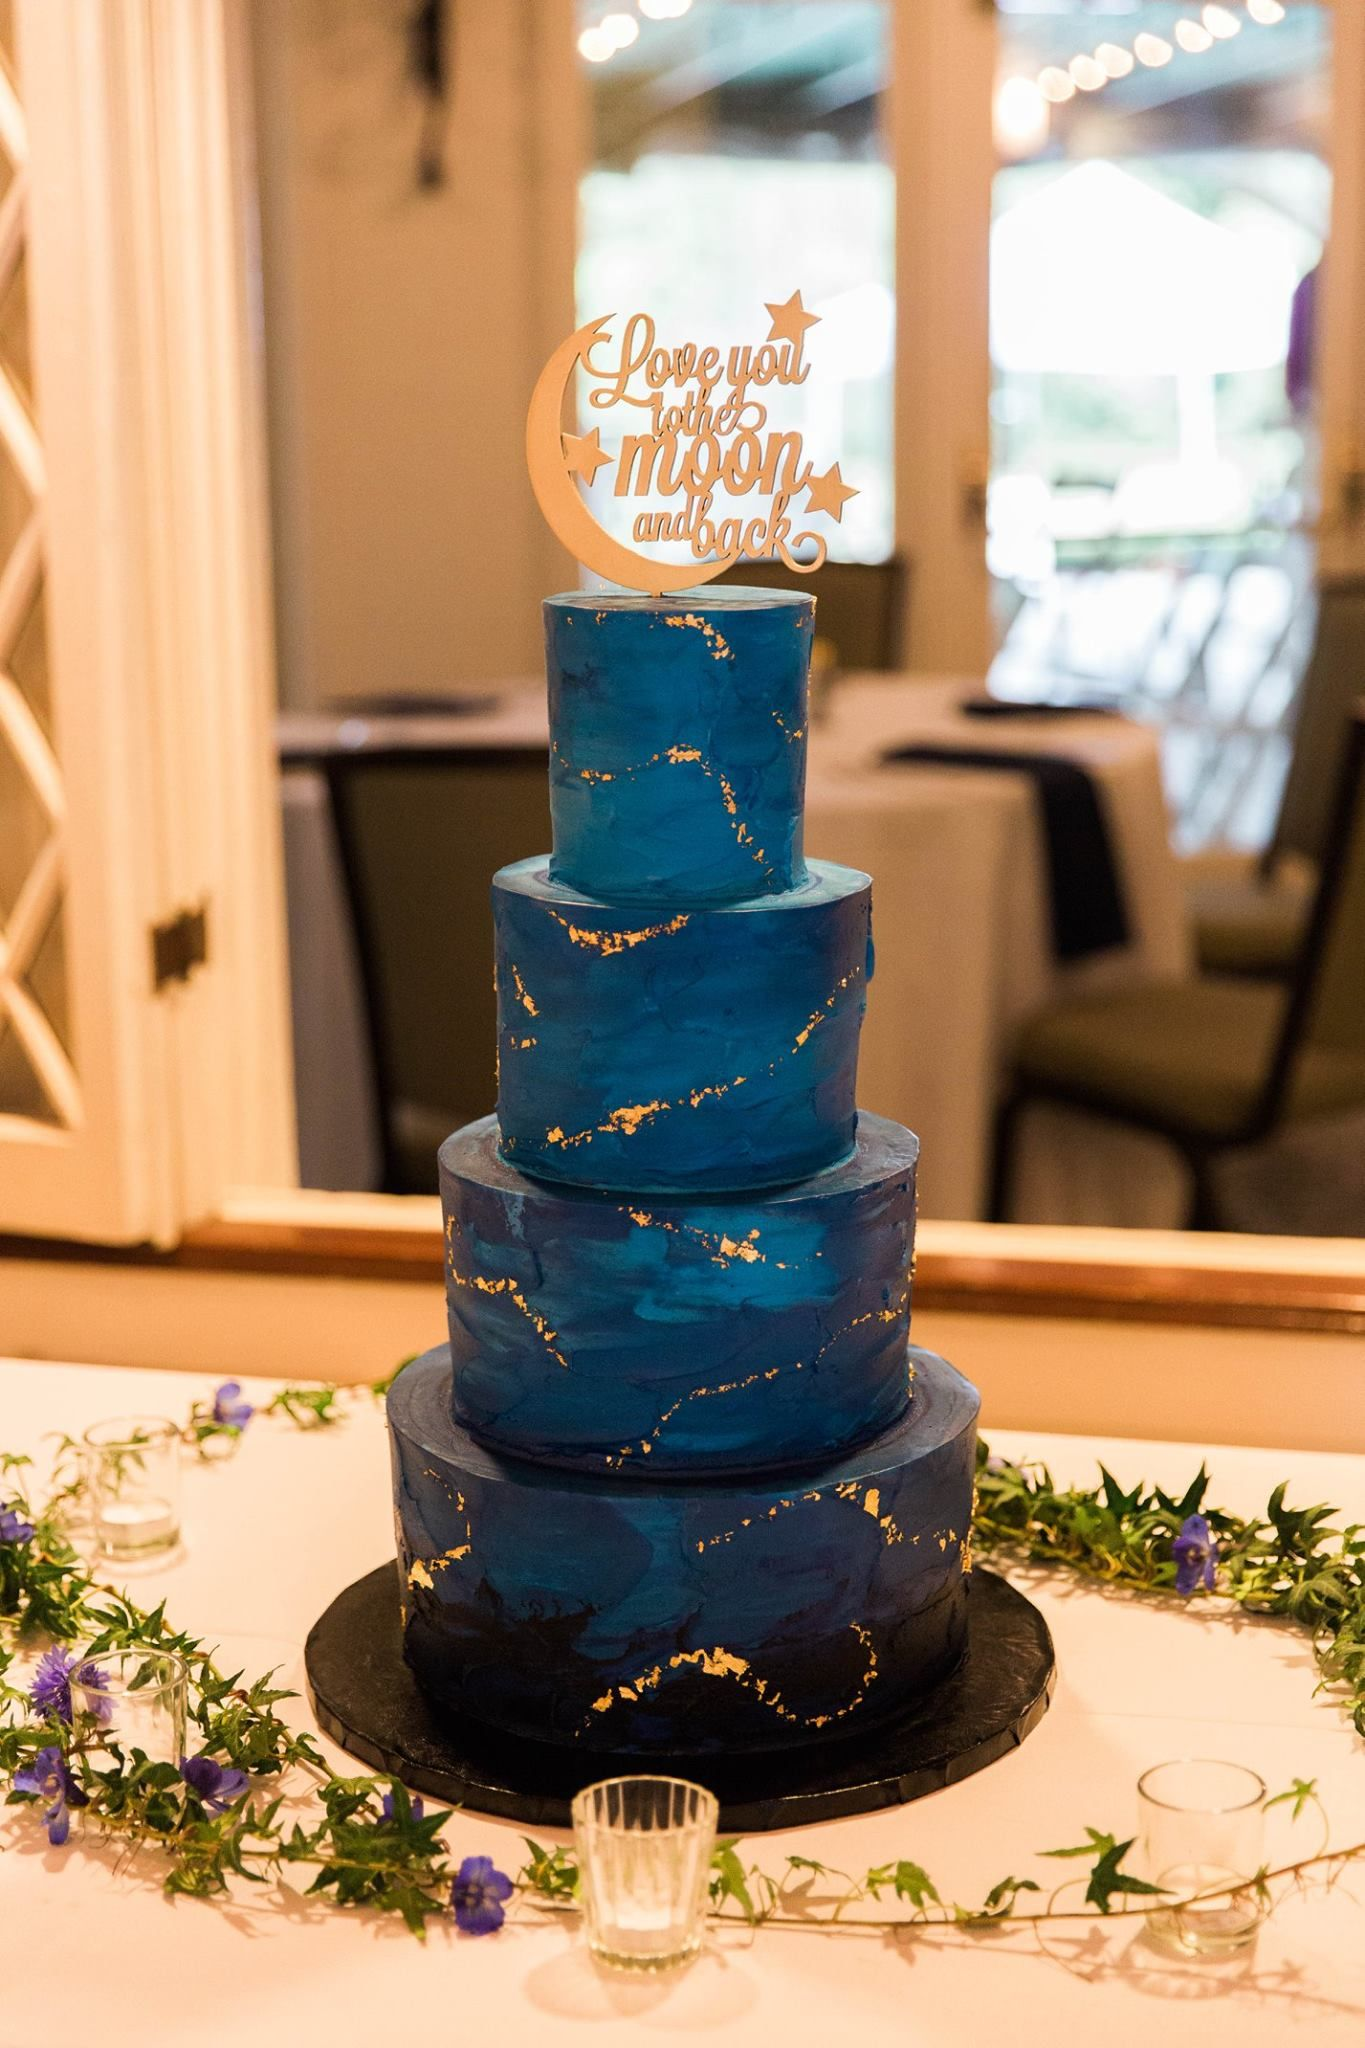 Starry Night I love you to the Moon and back wedding cake | Happily ...